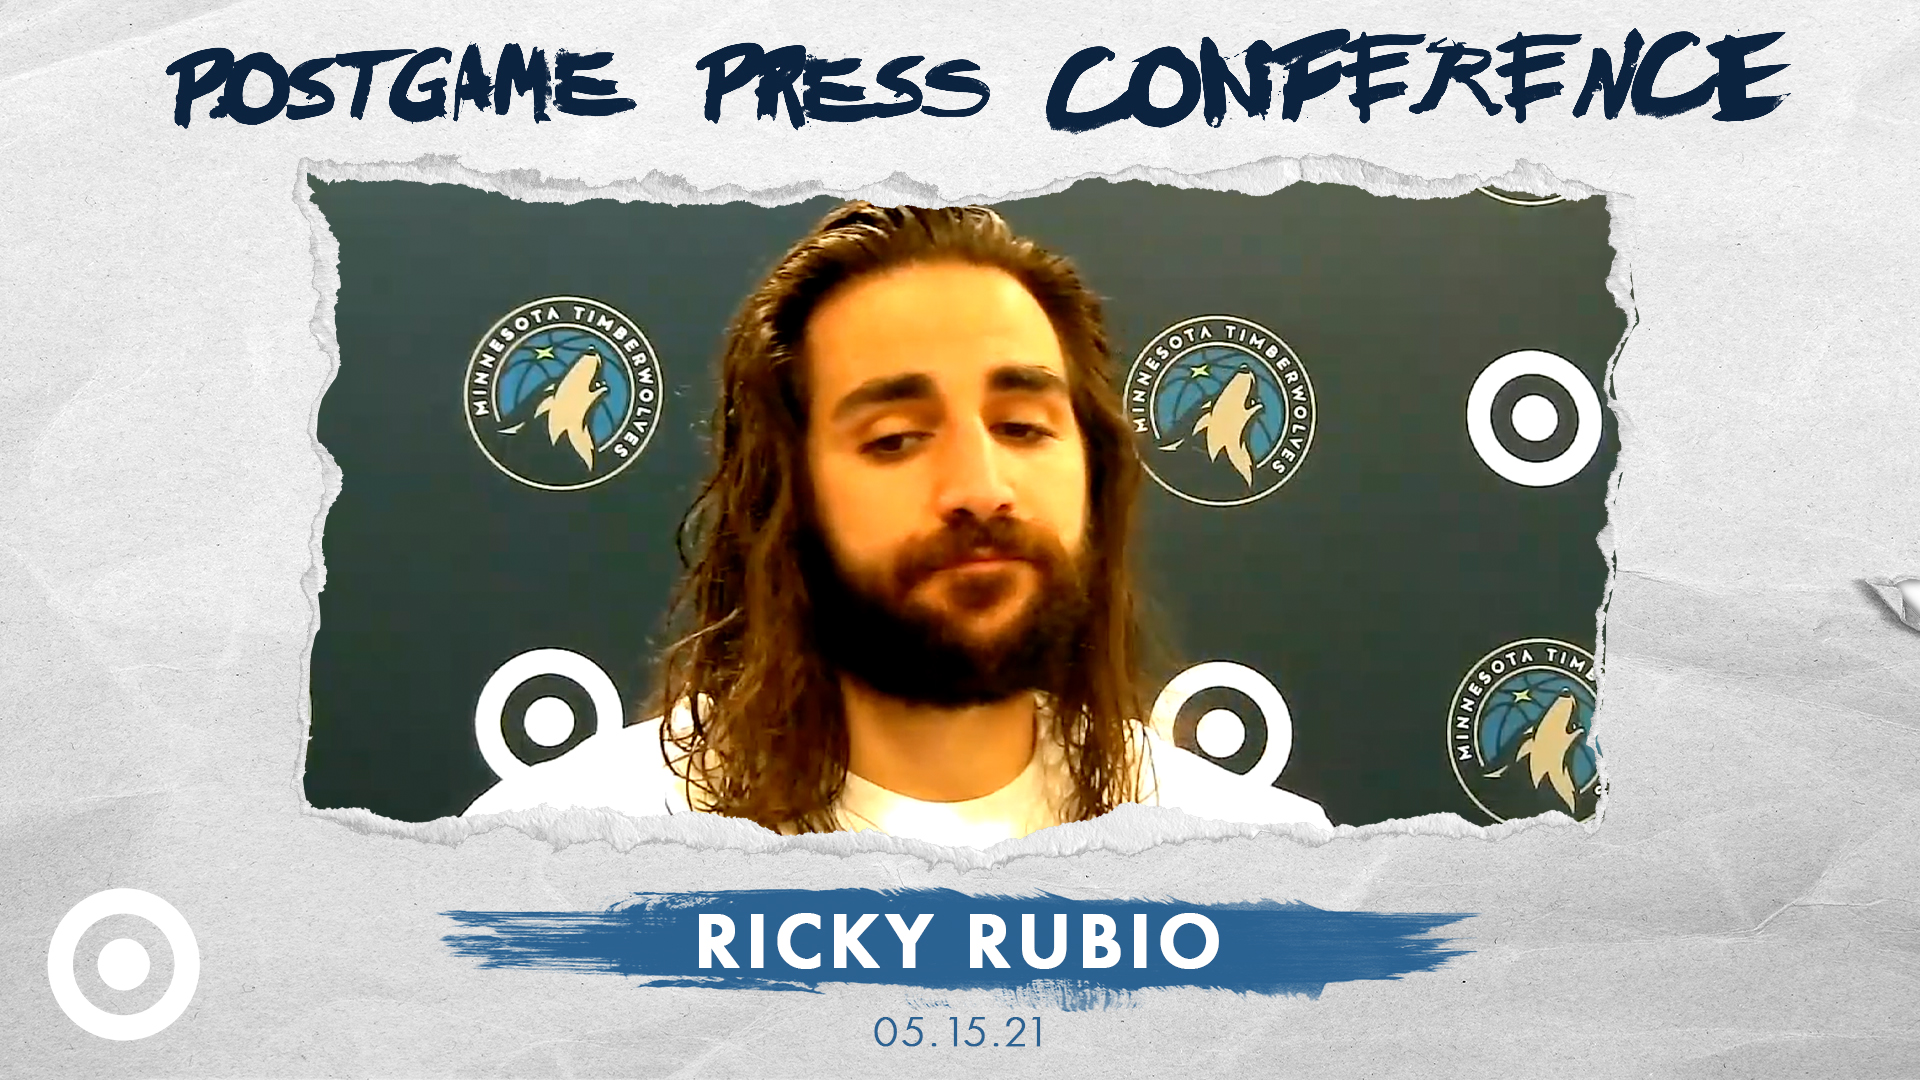 Ricky Rubio Postgame Press Conference - May 15, 2021